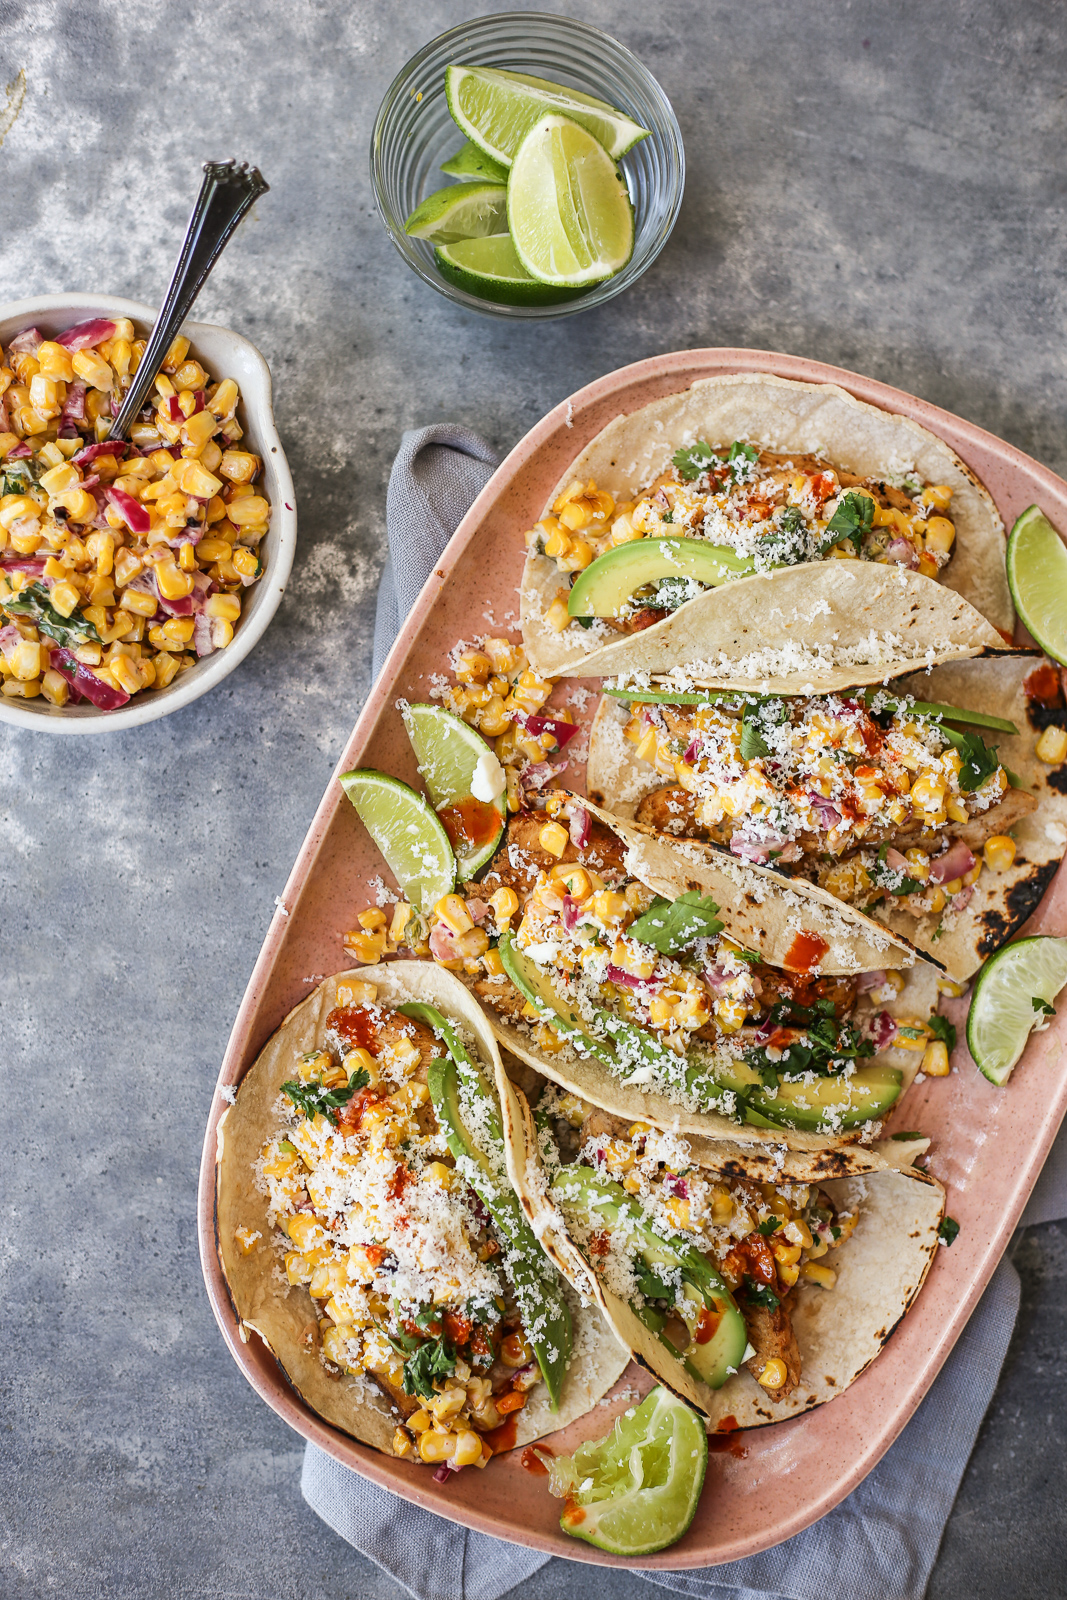 Seared Chicken Tacos with Street Corn Salsa